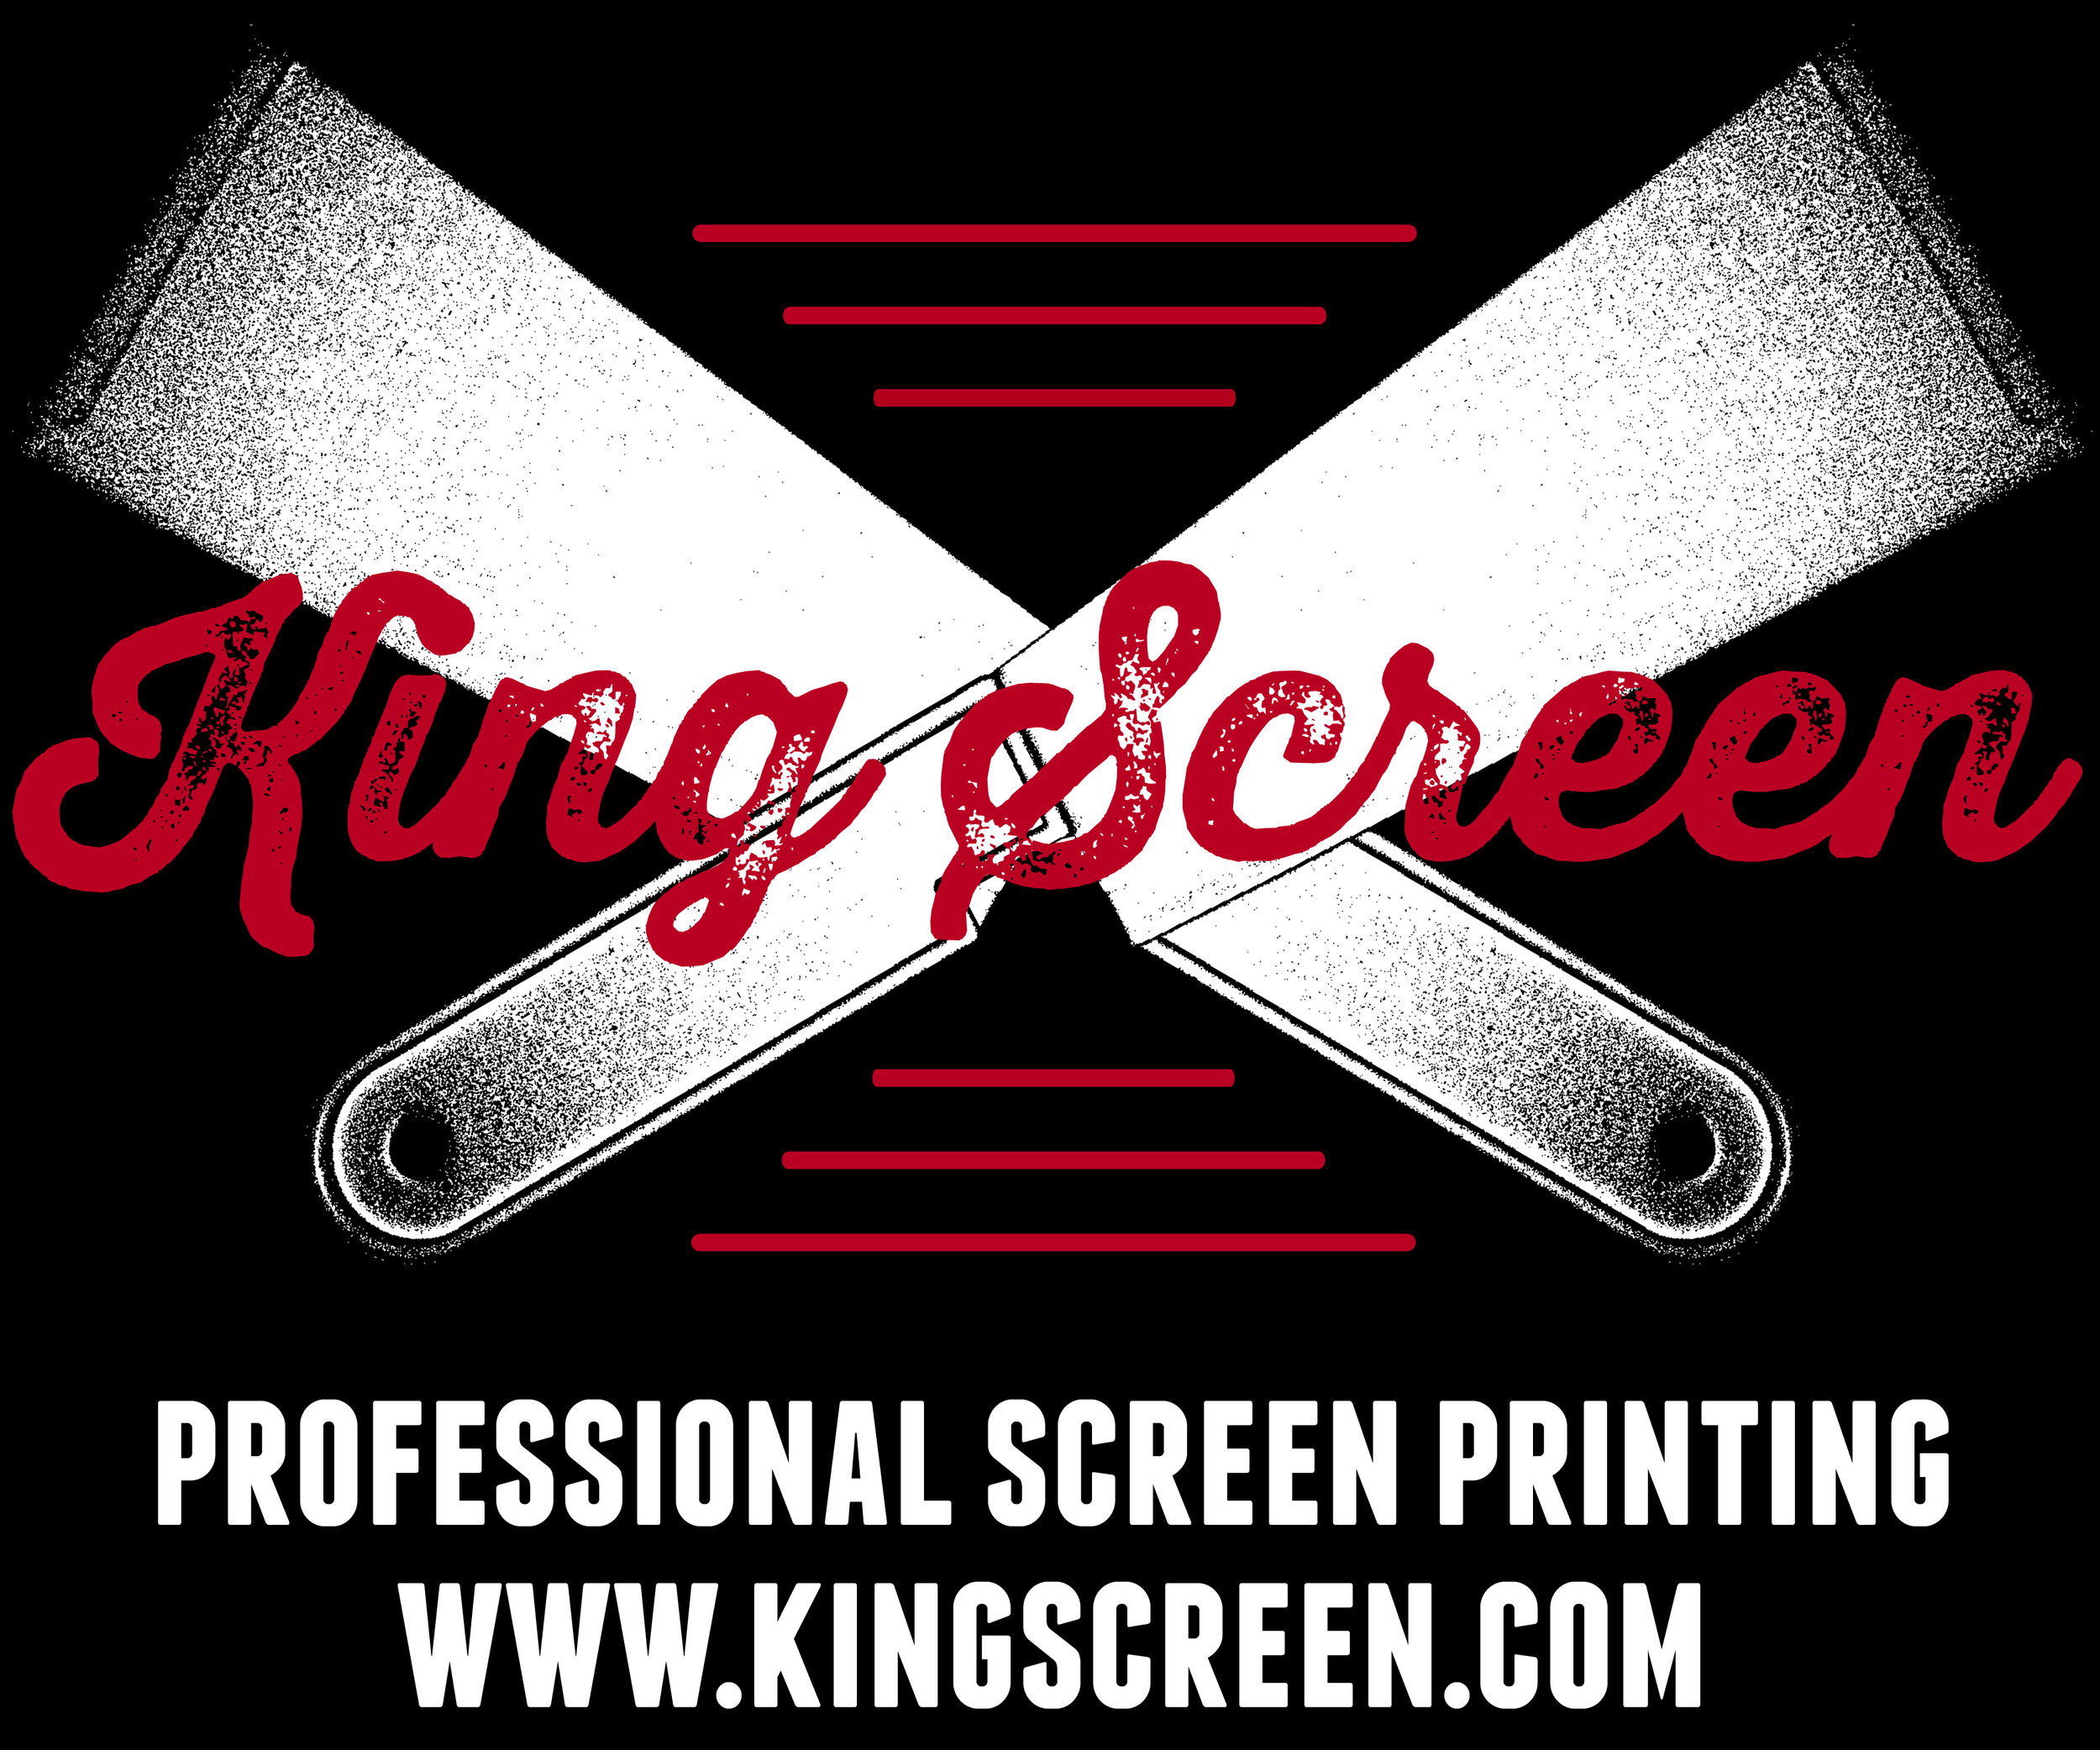 King Screen Professional Screen Printing